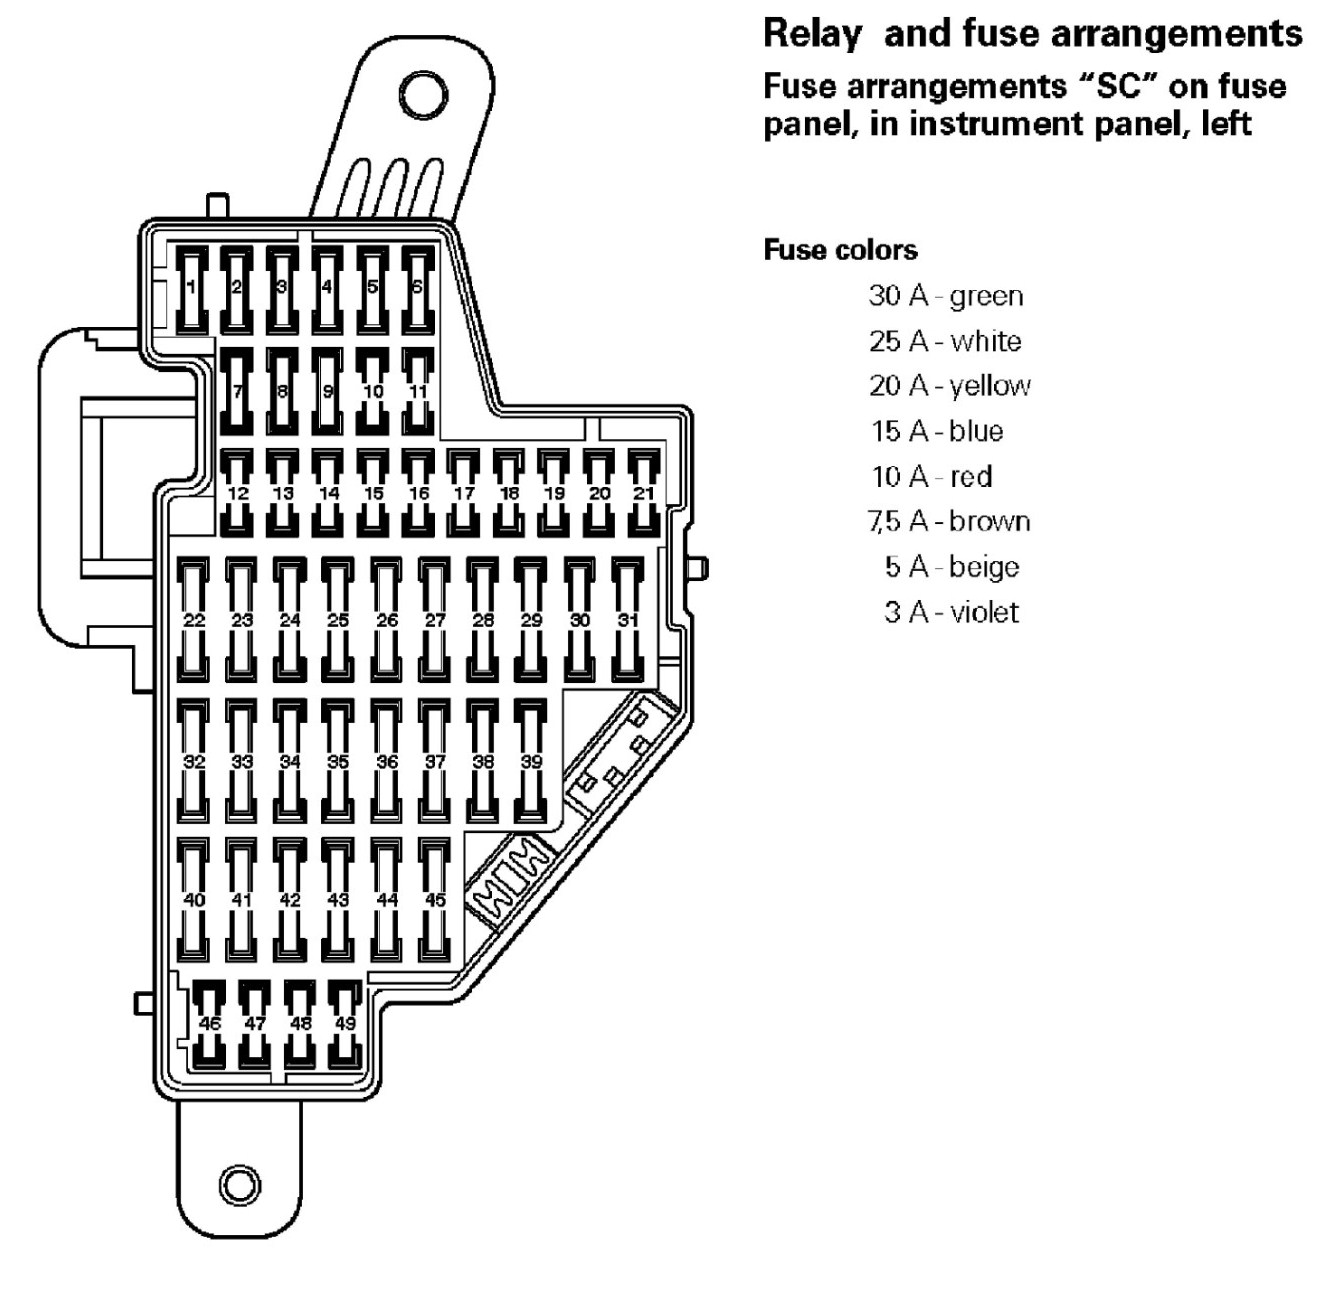 2009 Jetta Fuse Diagram Simple Wiring For 2002 Box Jeep Grand Cherokee